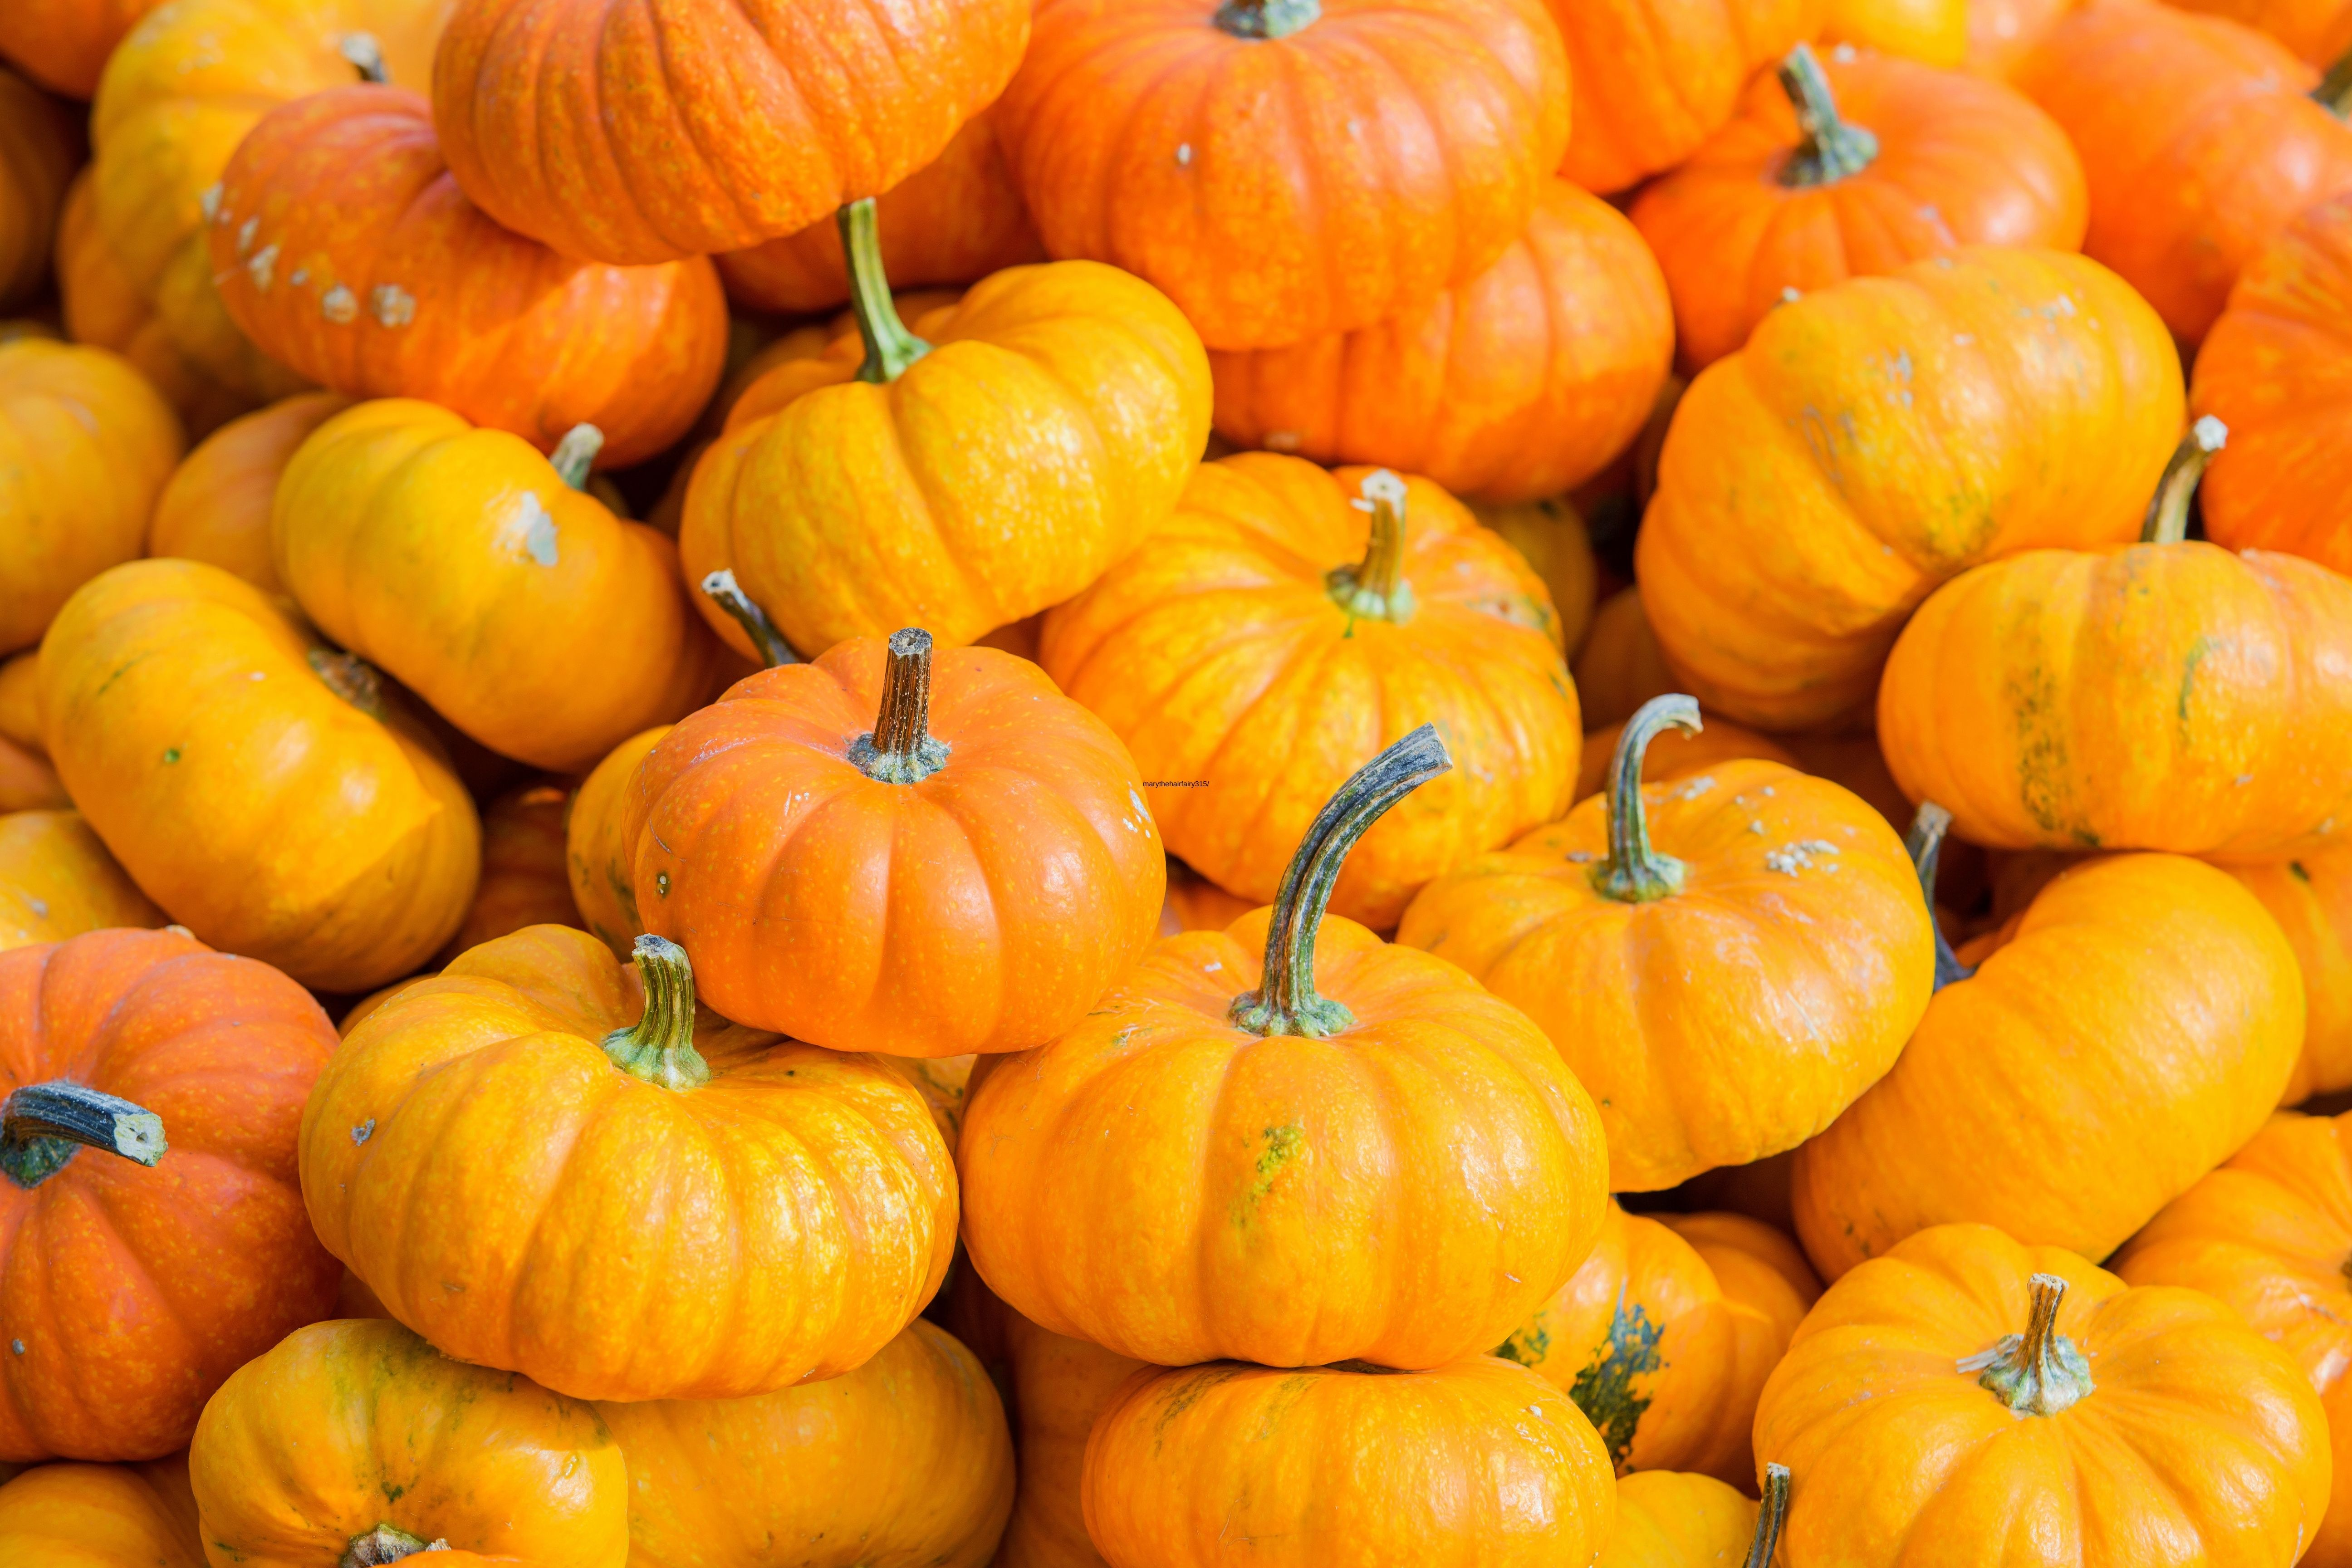 How to Tell If a White Pumpkin Is Ripe